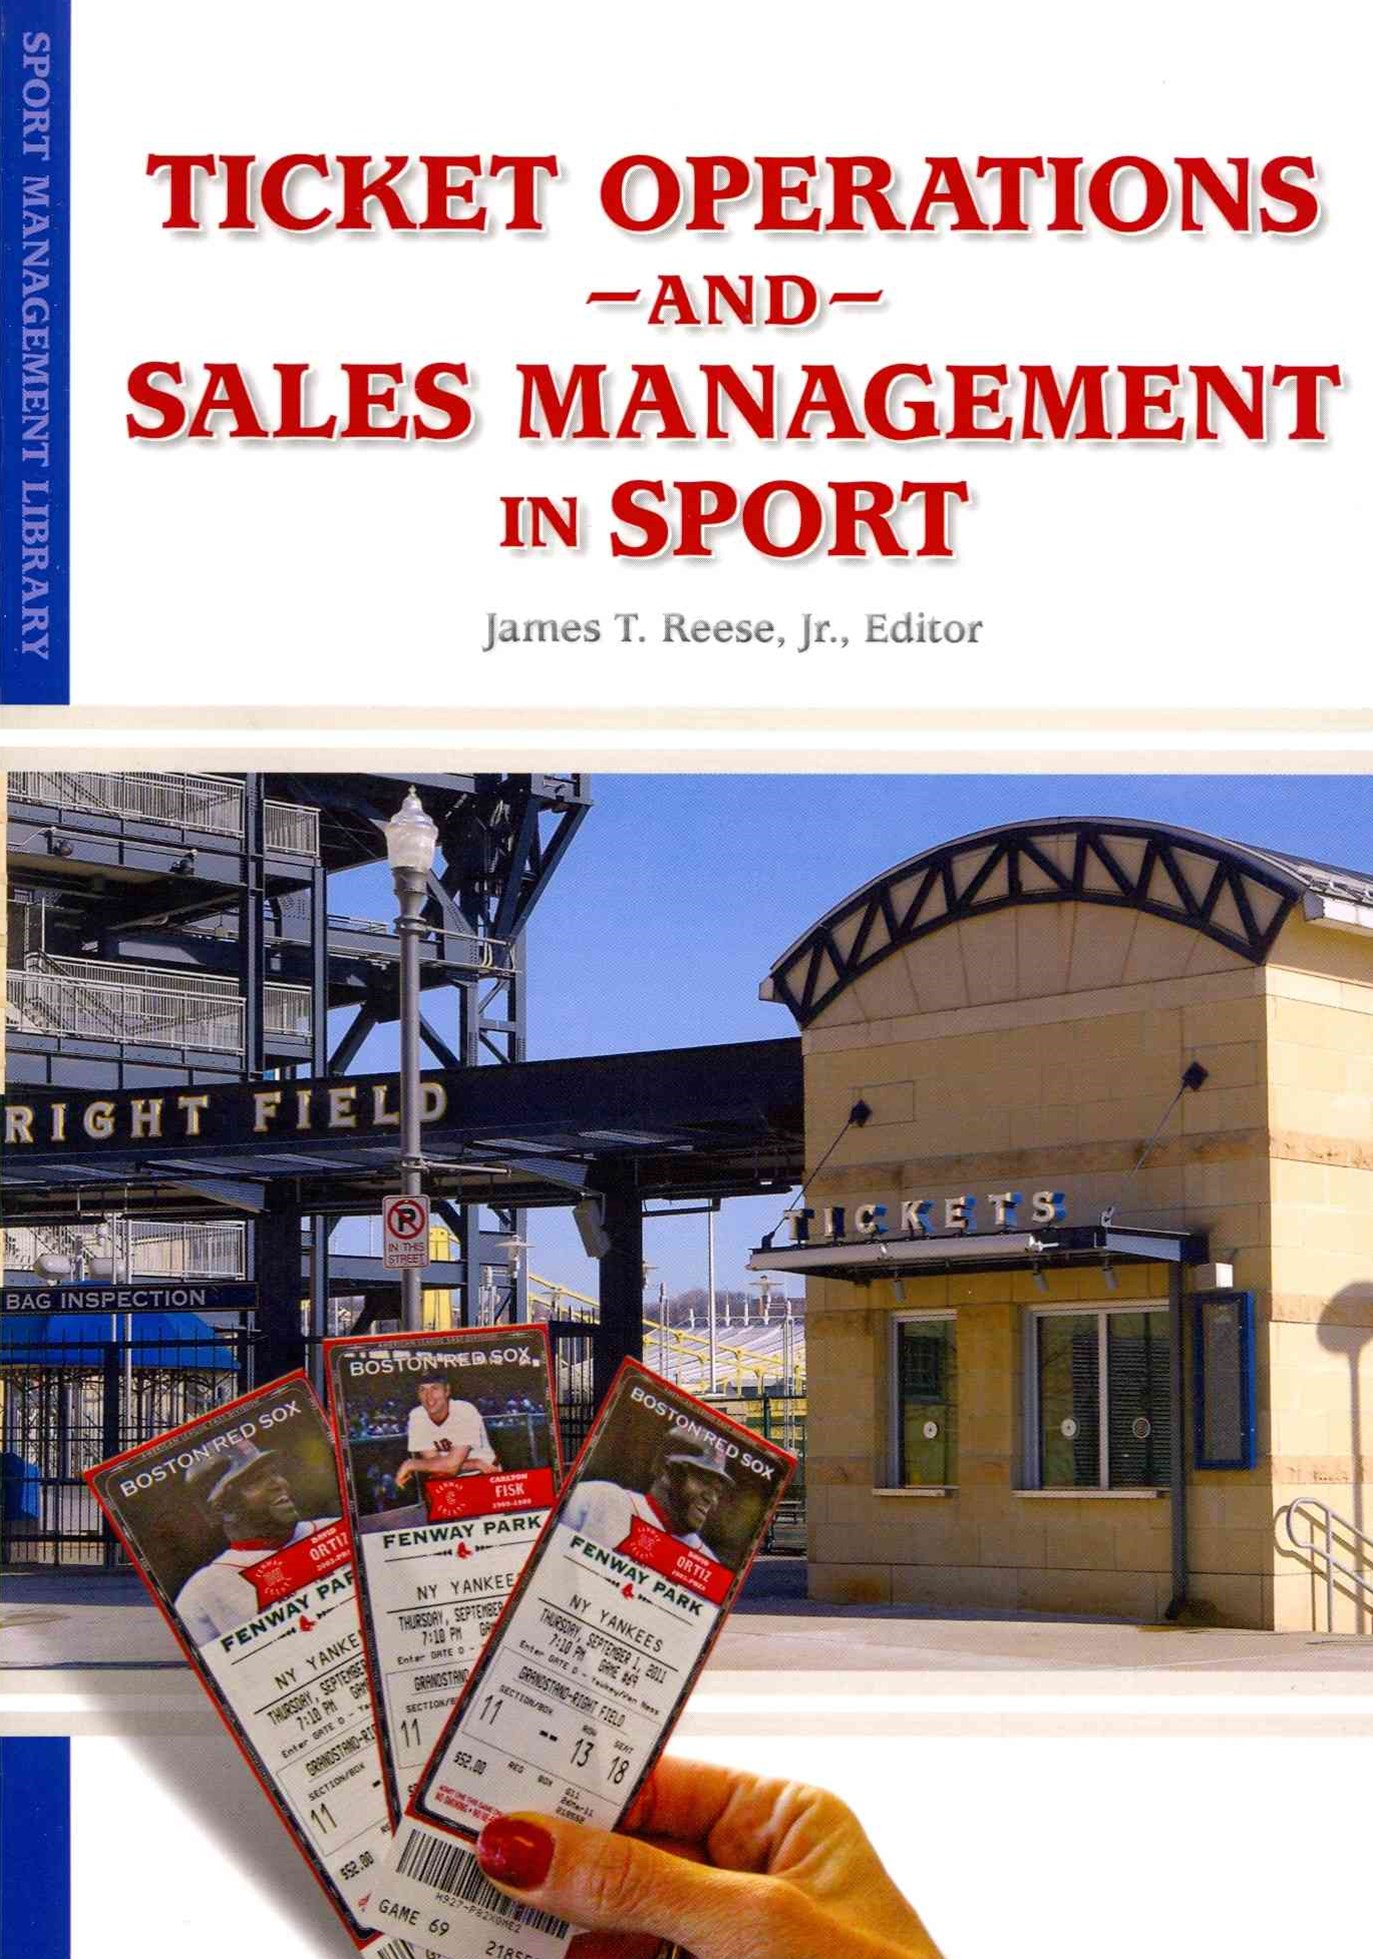 Ticket Operations and Sales Management in Sport